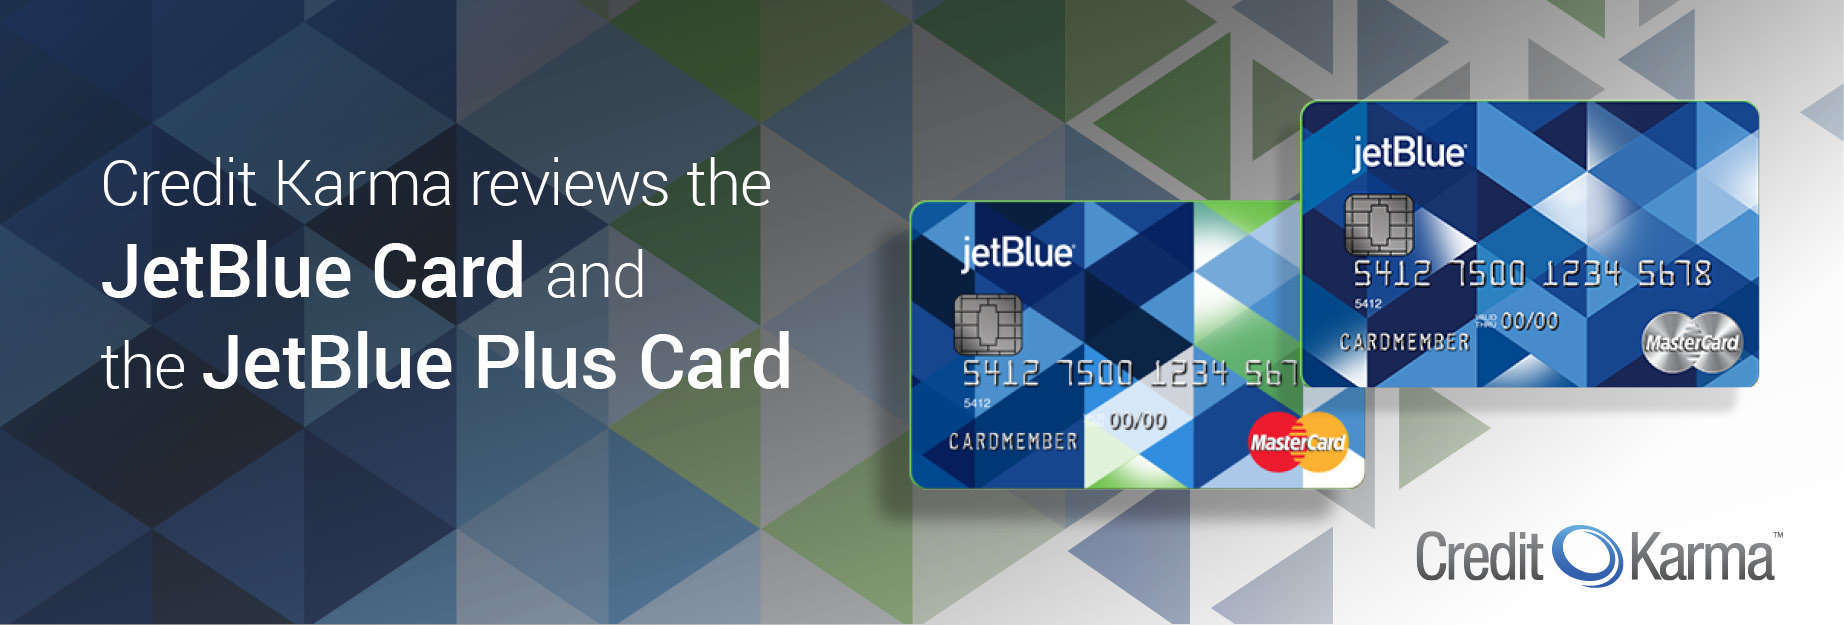 Review: The JetBlue Card and JetBlue Plus Card from Barclays